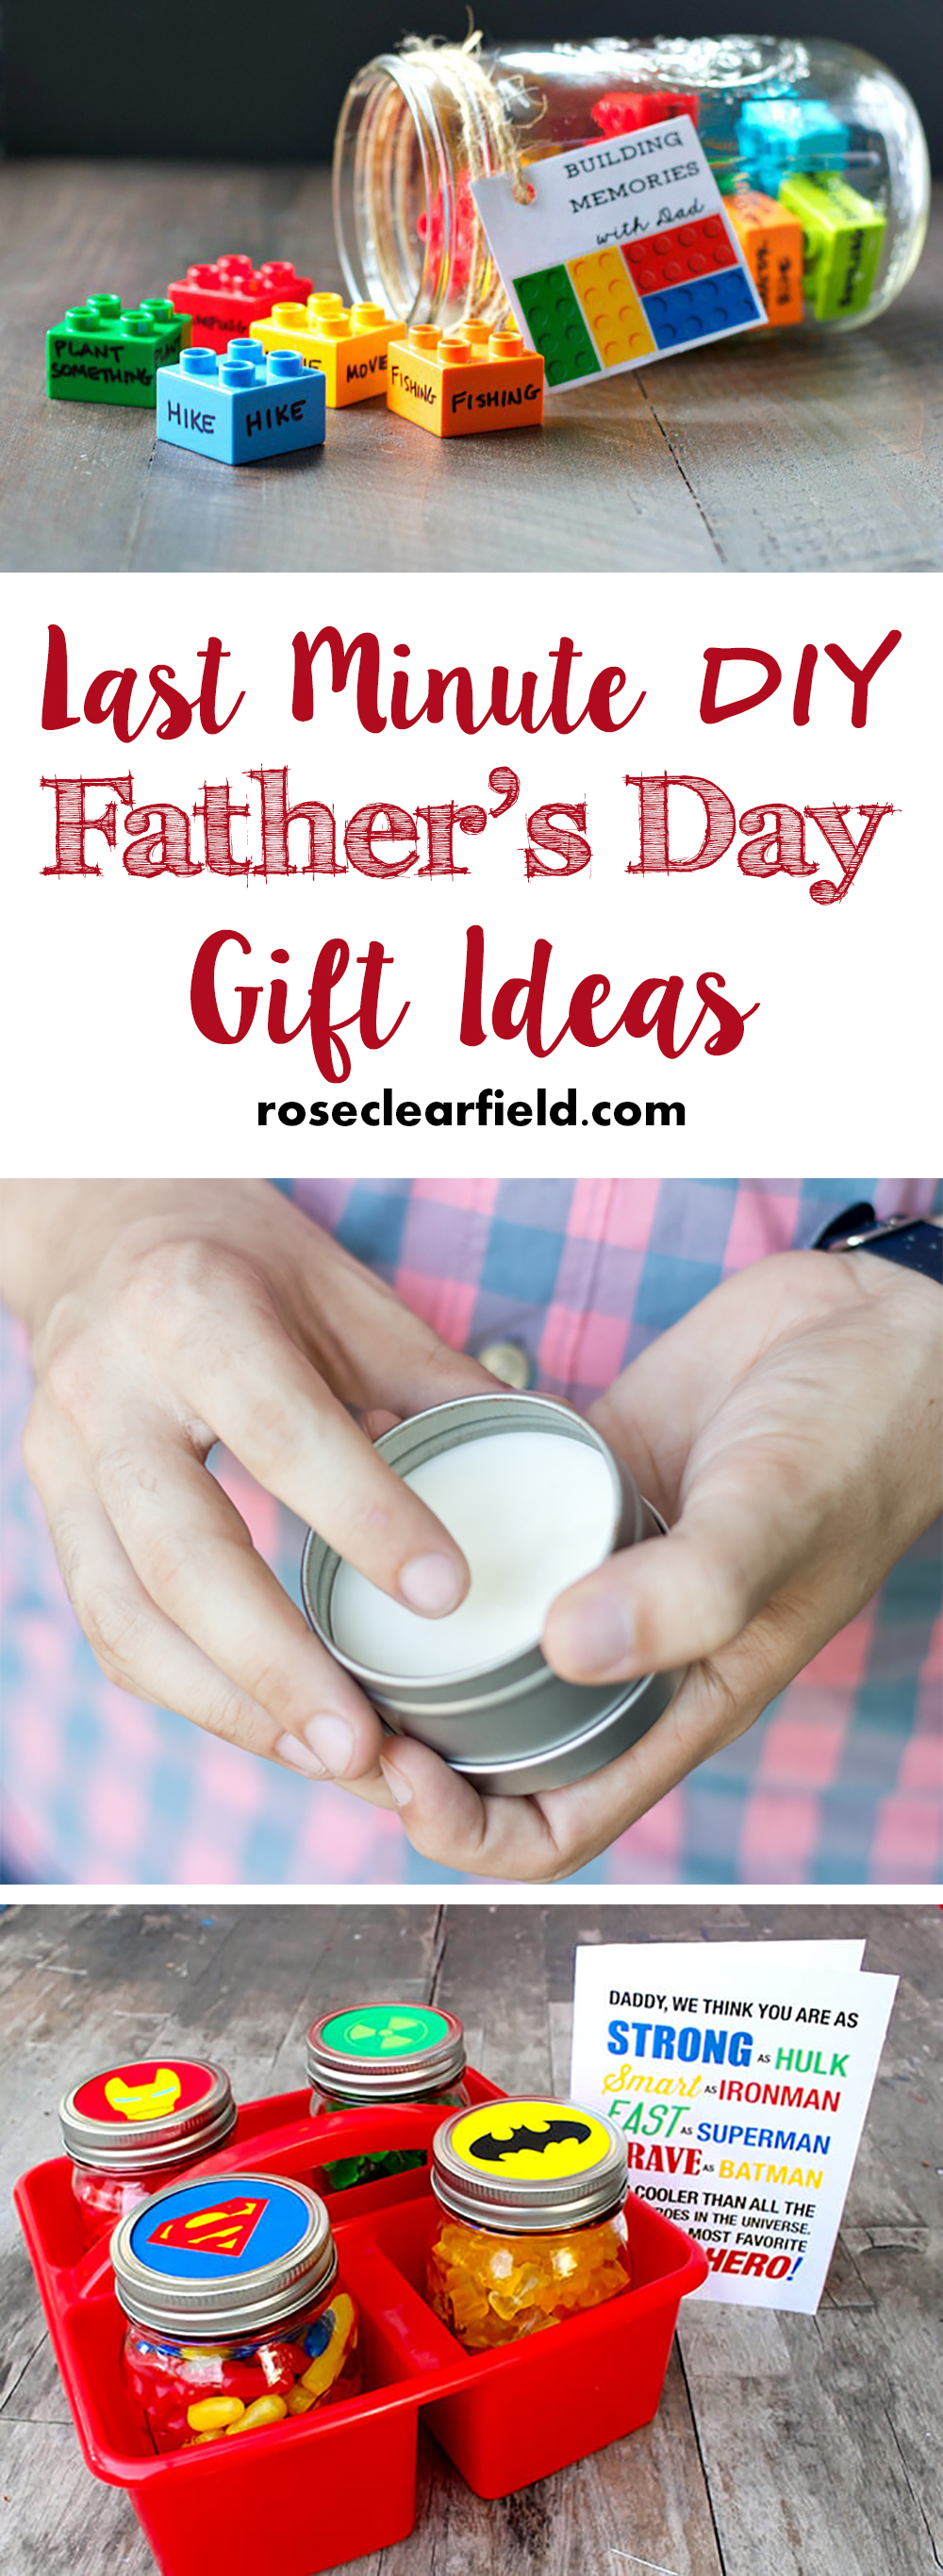 Last Minute DIY Father's Day Gift Ideas | http://www.roseclearfield.com